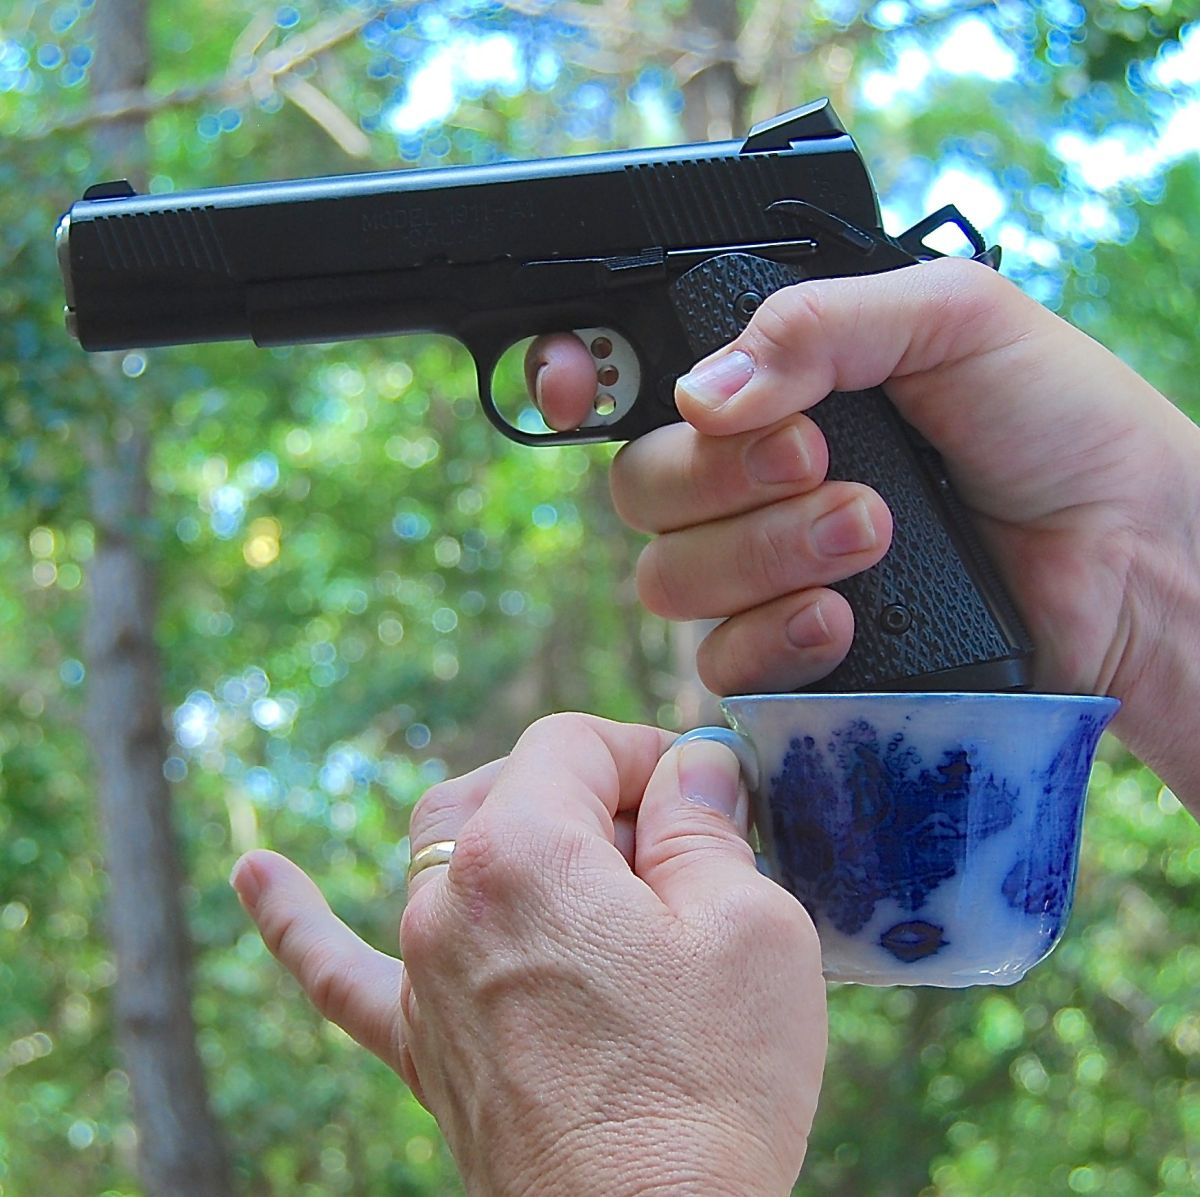 8 Shooting Tips: How Not To Look Like An Amateur Shooter